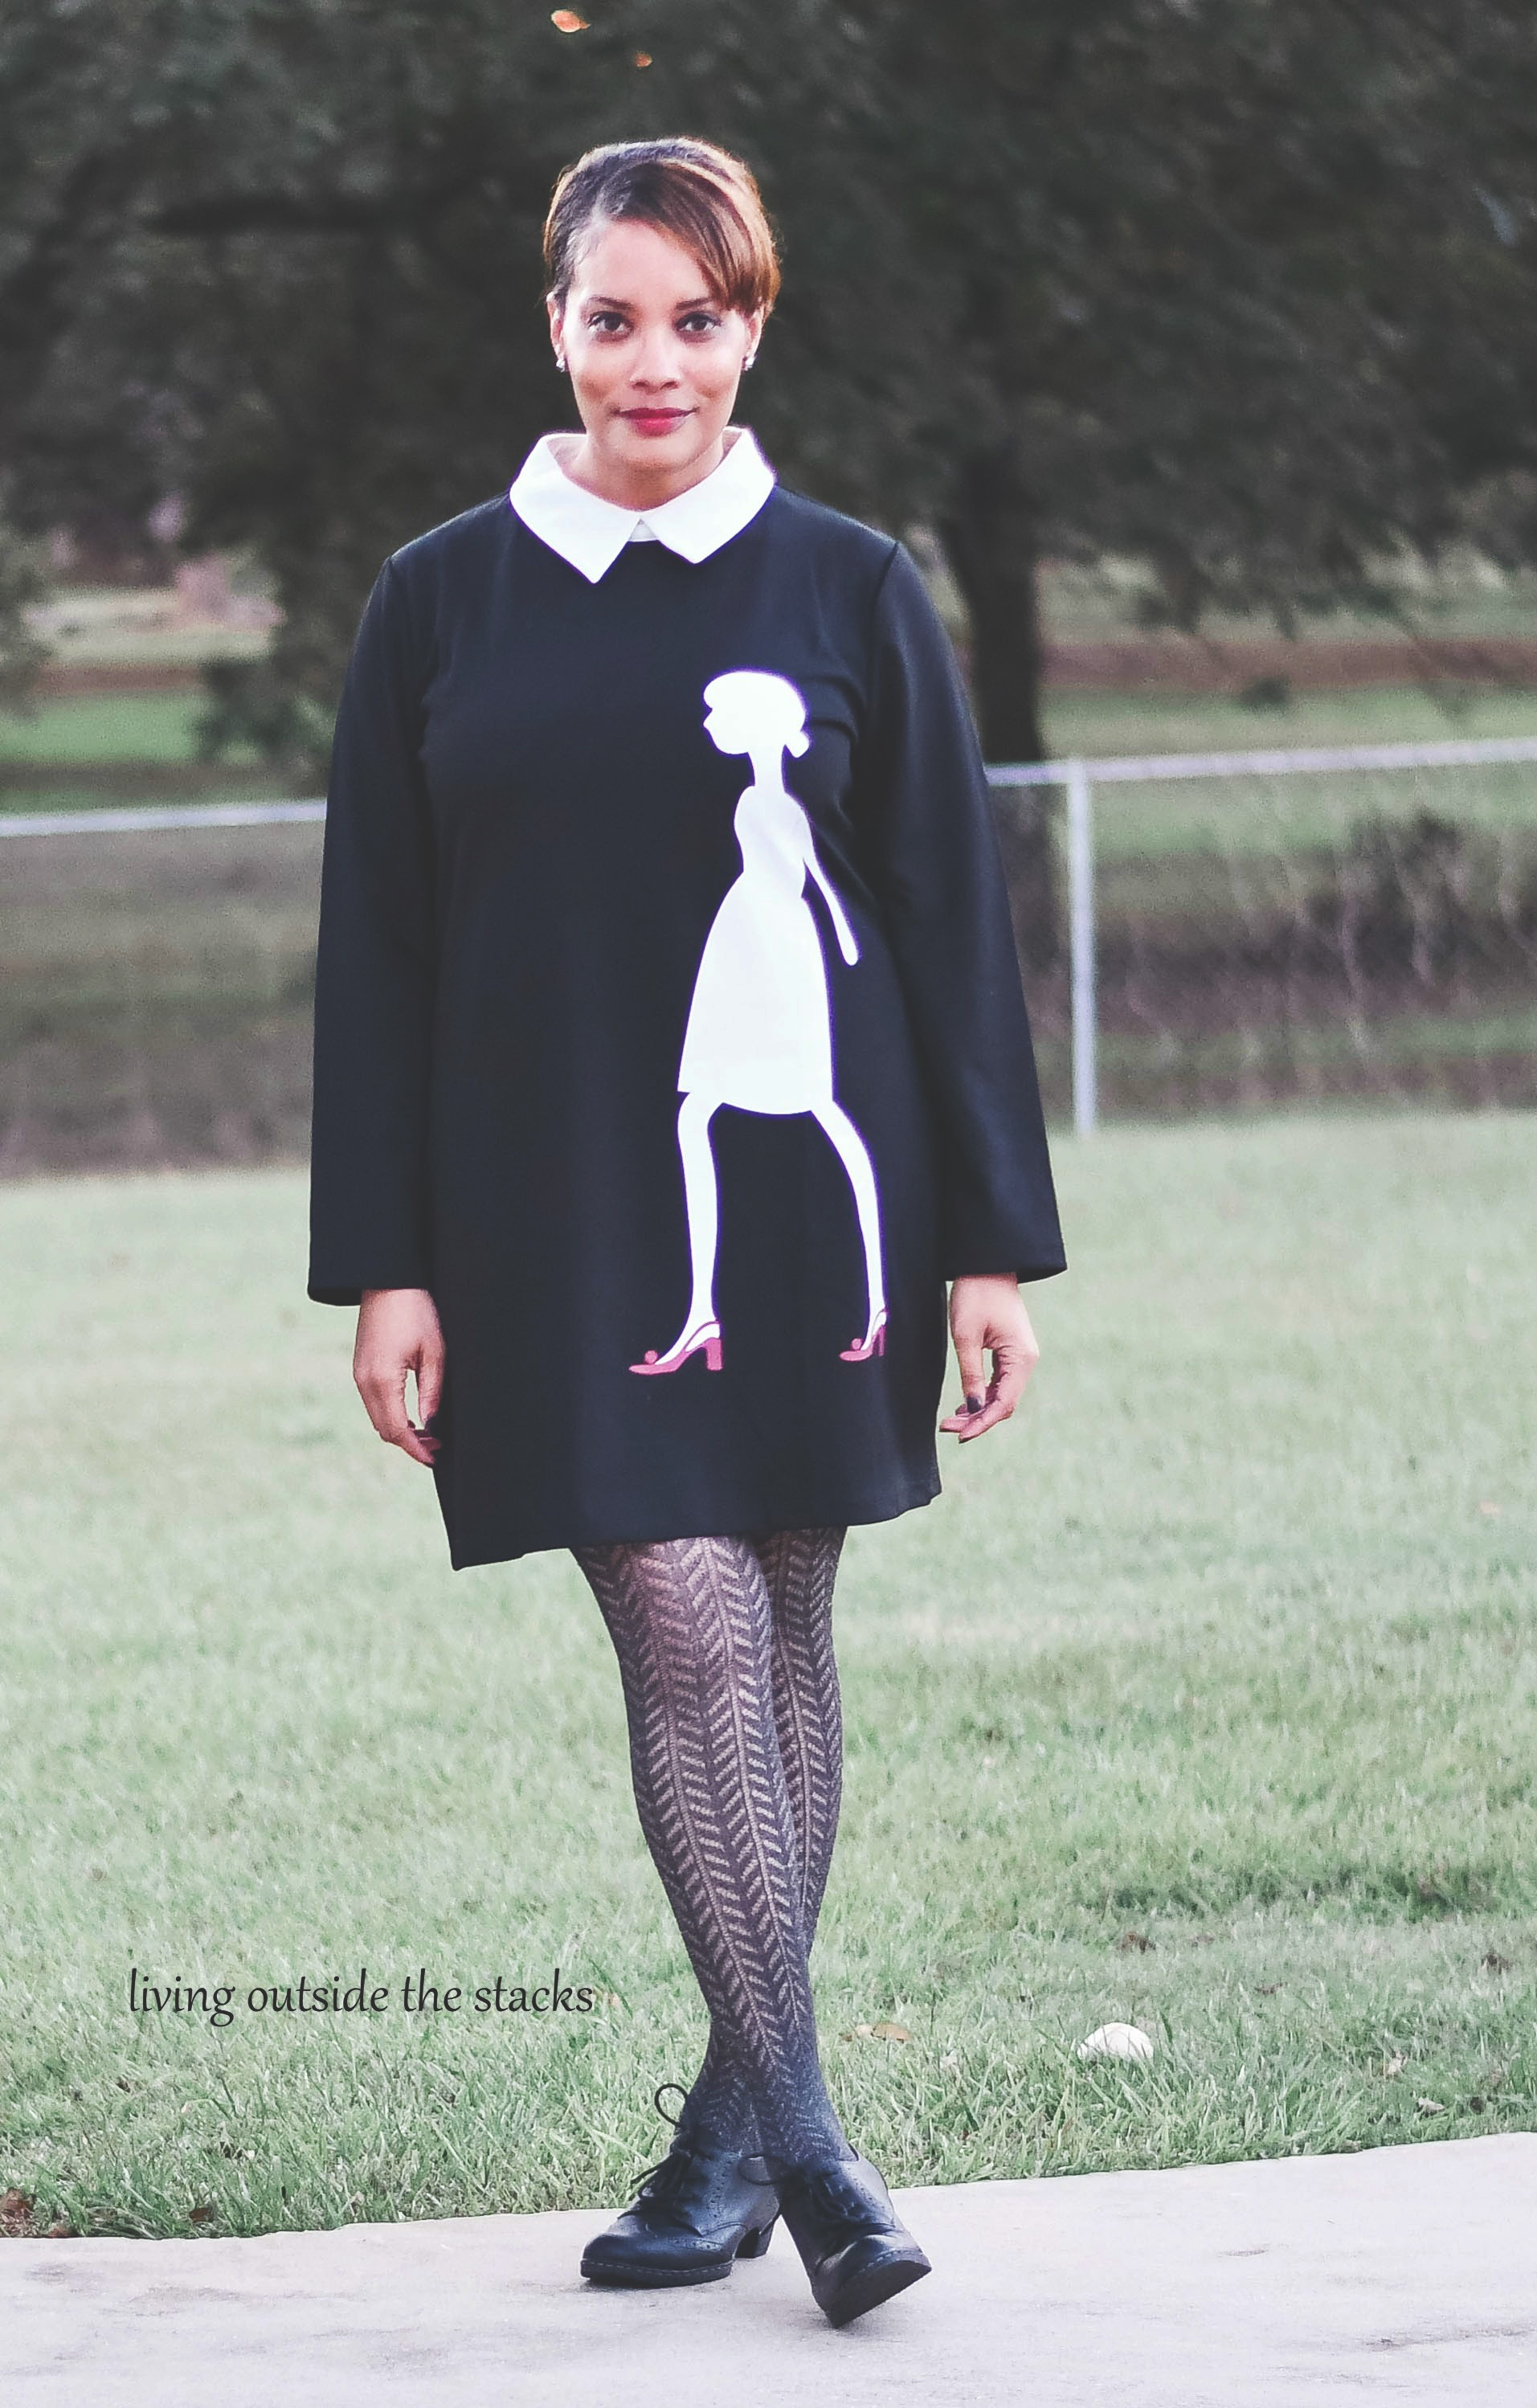 Black Sheath Dress Gray Stockings and Black Oxfords {living outside the stacks}